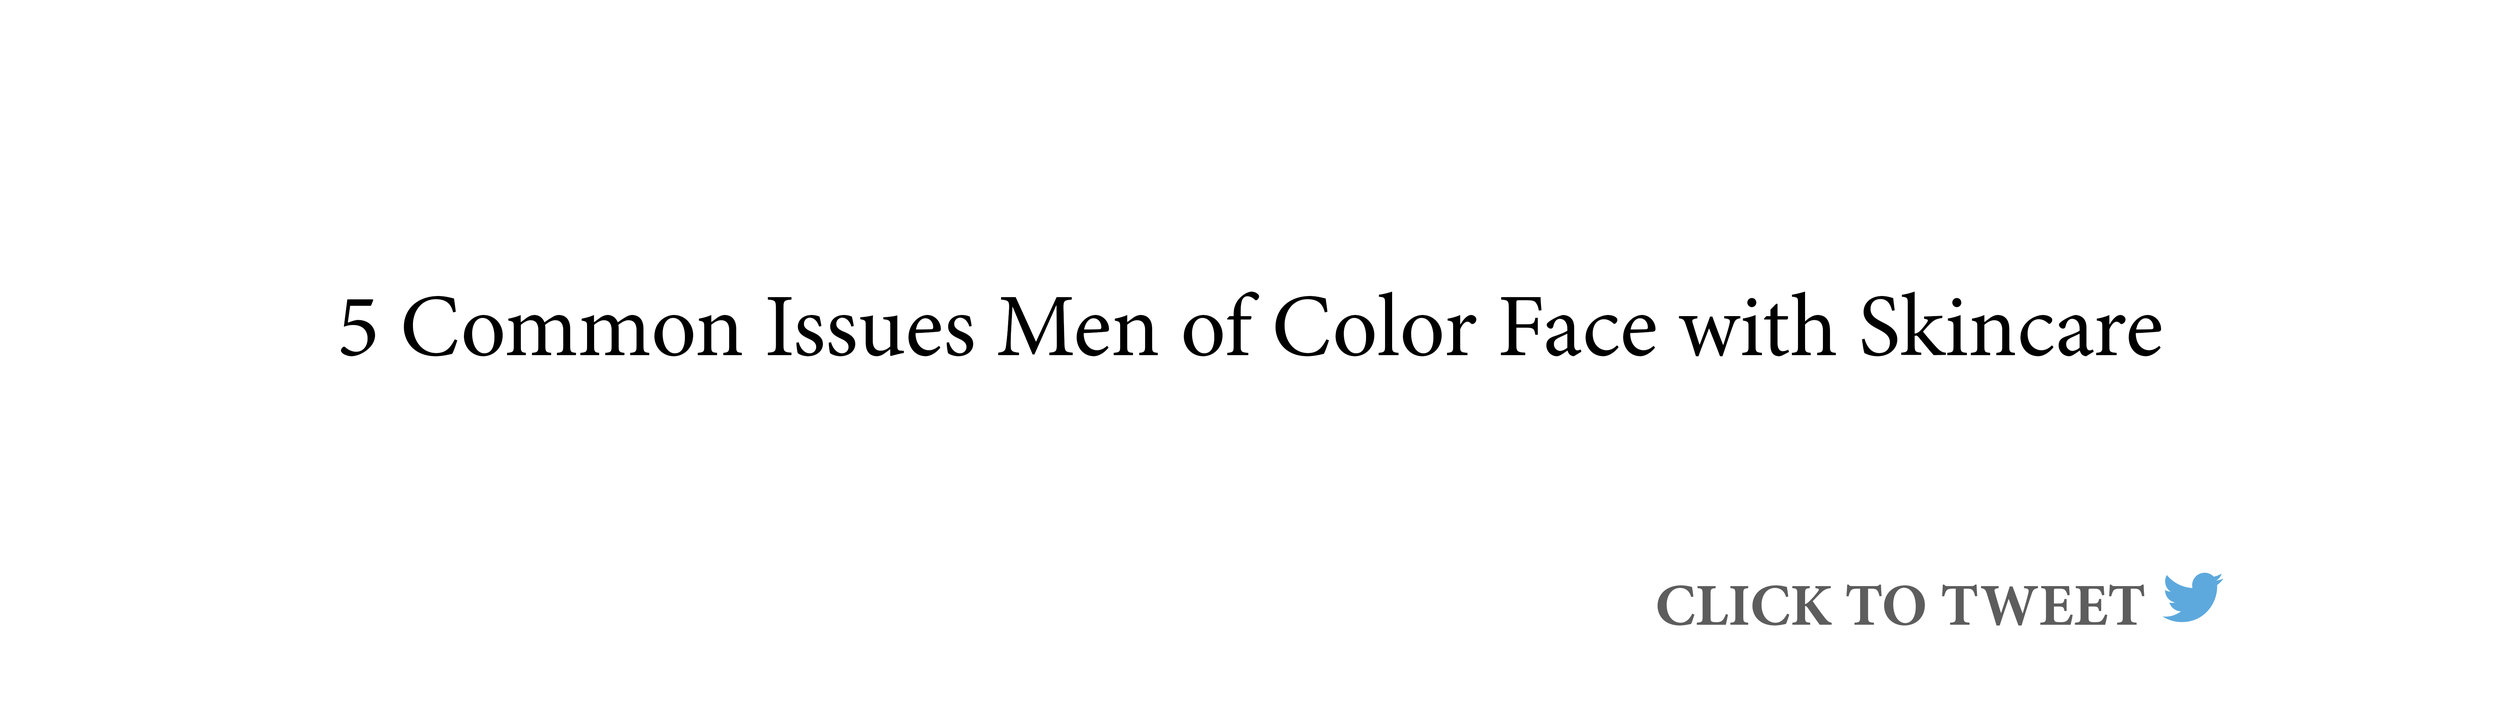 skincare-tips-for-men-of-color-click-to-tweet.jpg